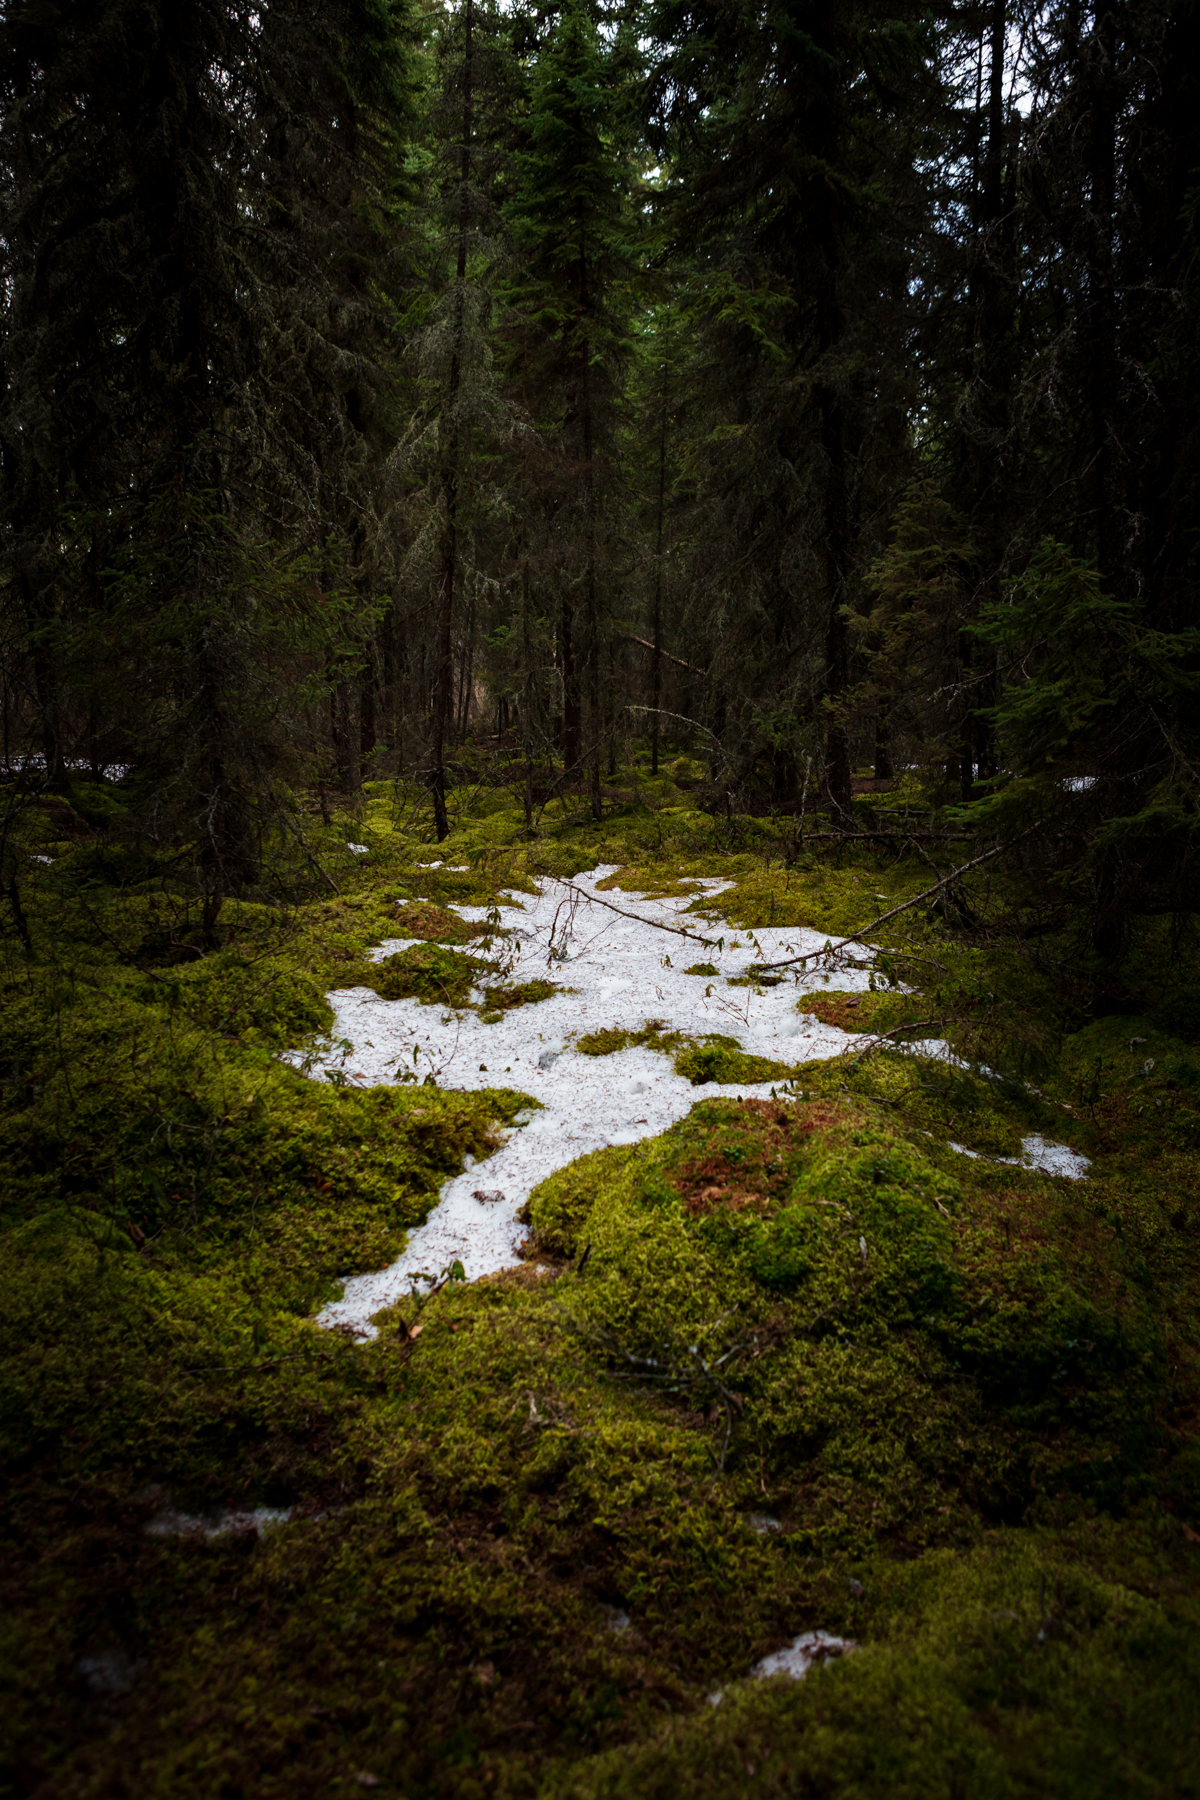 mossy forest with snow